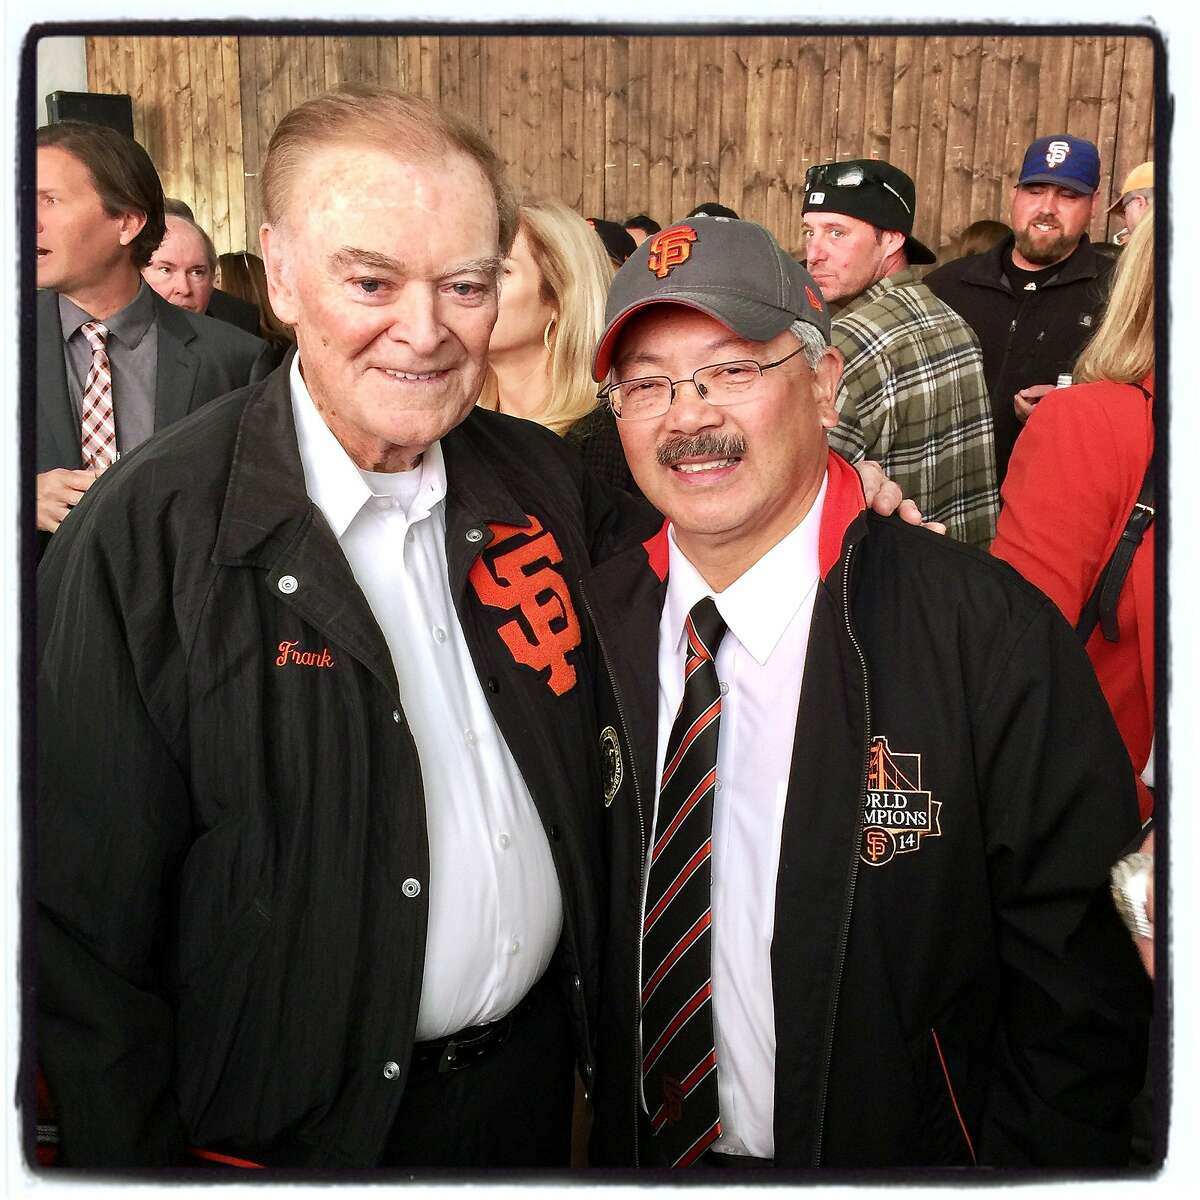 Former Mayor Frank Jordan (left) celebrates Giants opening day with Mayor Ed Lee at the ballpark on April 10, 2017. The former lost his home to a Sonoma County fire.